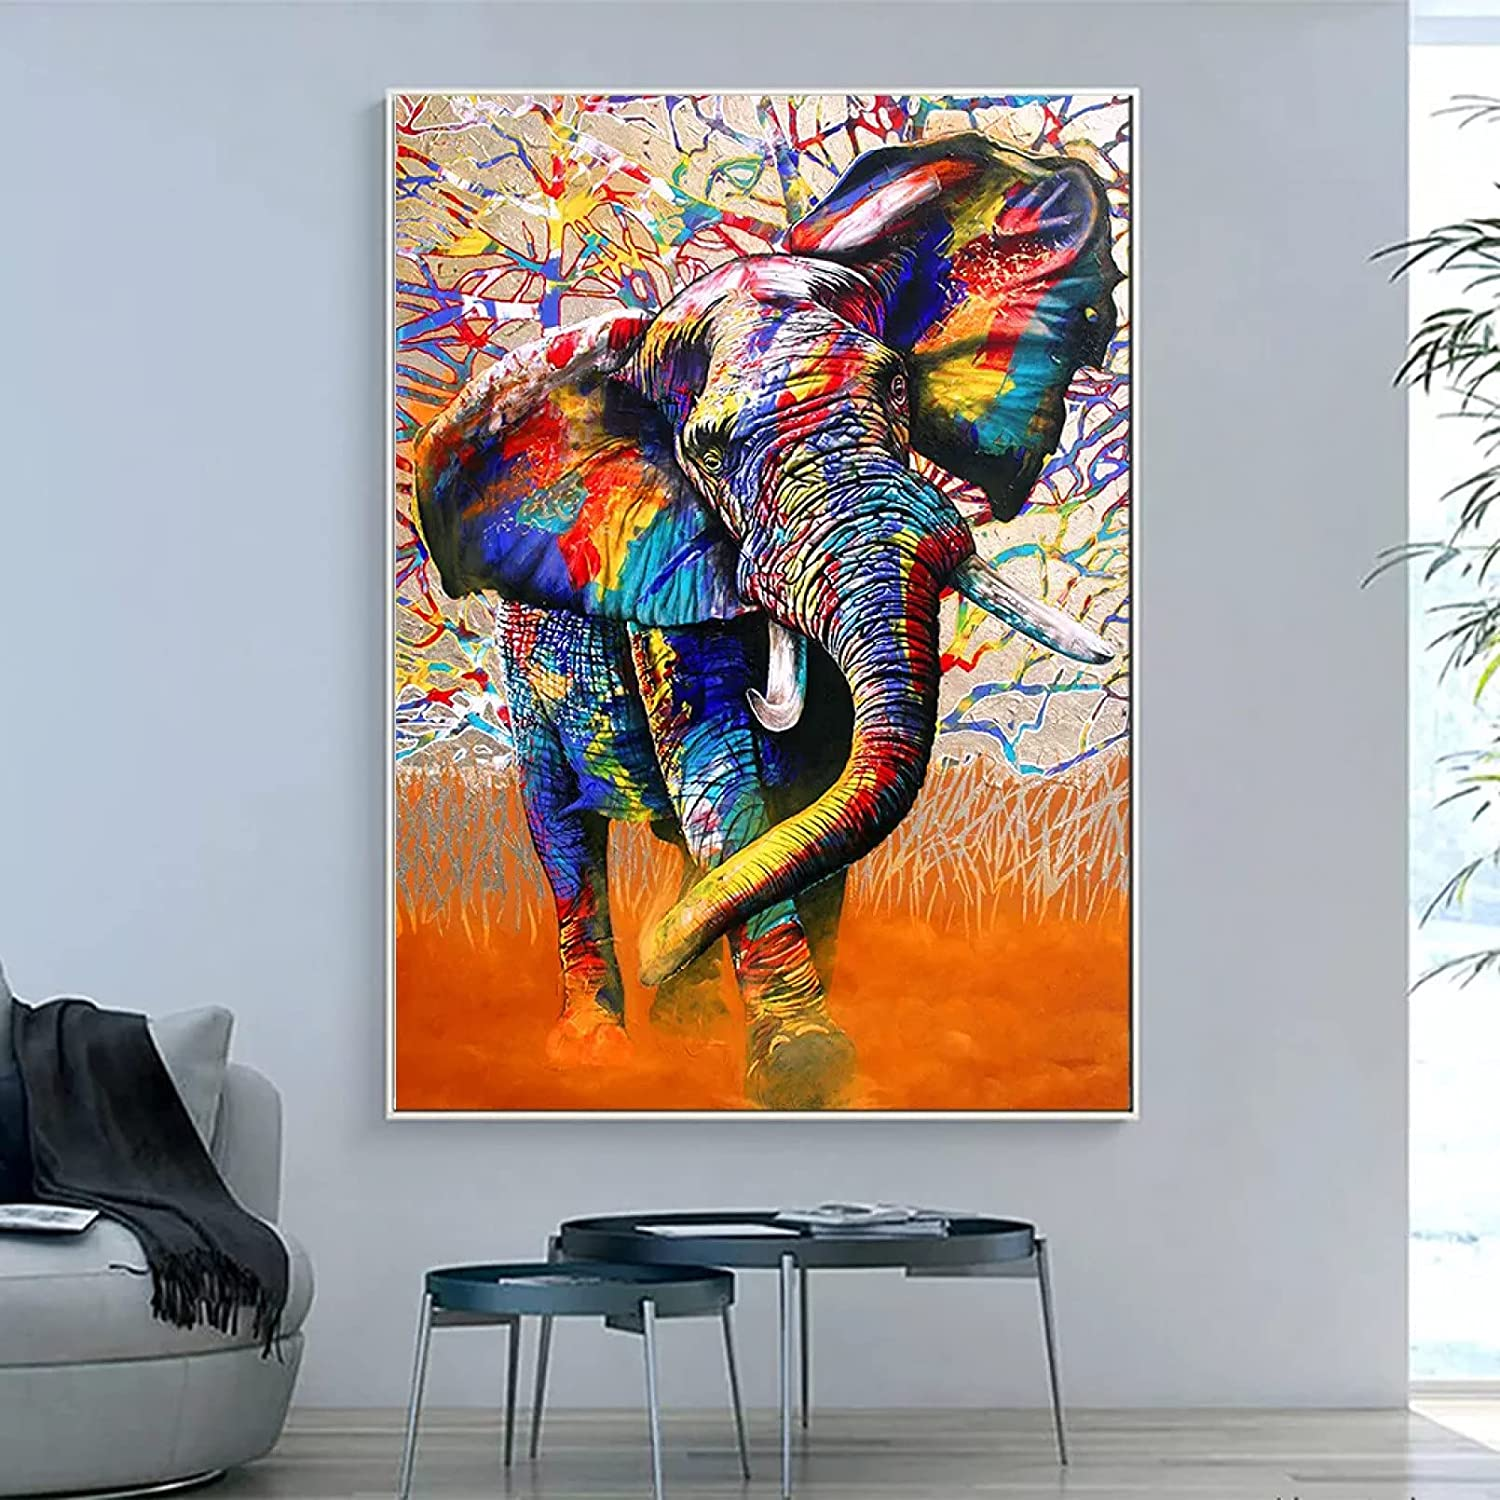 FOMBV Wall Art Canvas Excellent Painting Animal Pictur Clearance SALE Limited time Decorative